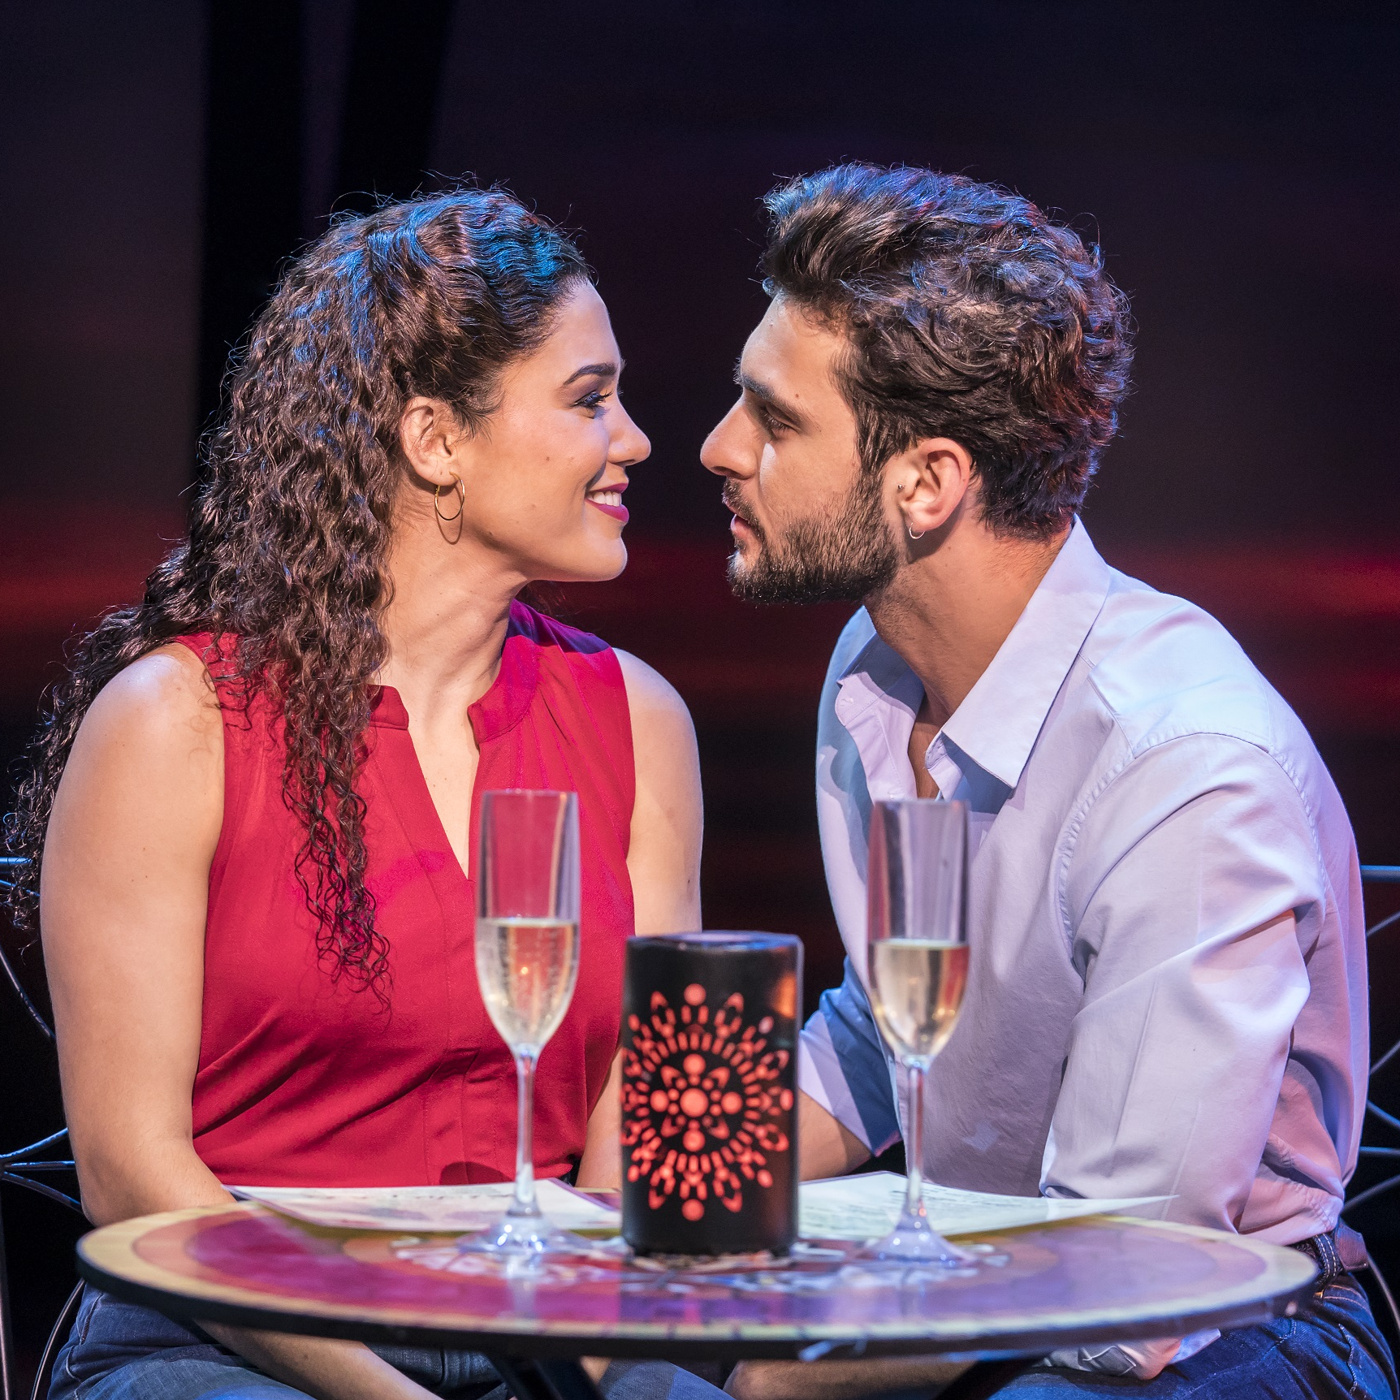 London On Your Feet Star Christie Prades on Meeting Gloria Estefan, Making Her West End Debut & More